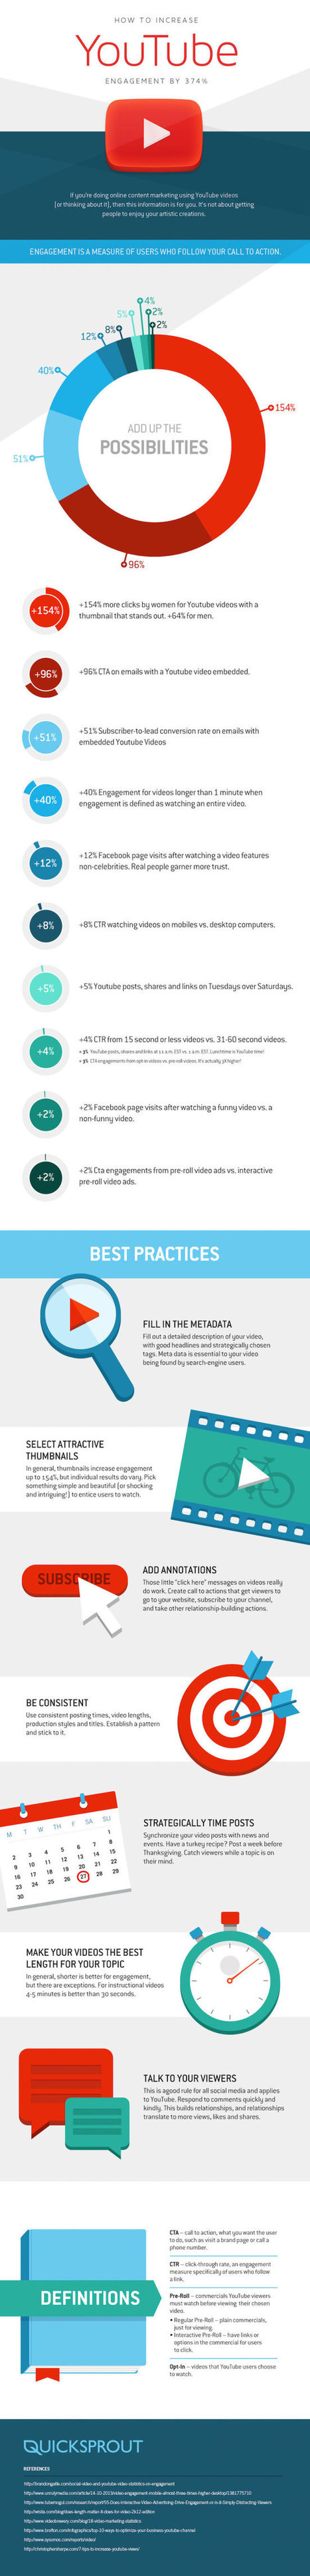 How to Increase YouTube Engagement Rapidly [Infographic] | MarketingHits | Scoop.it